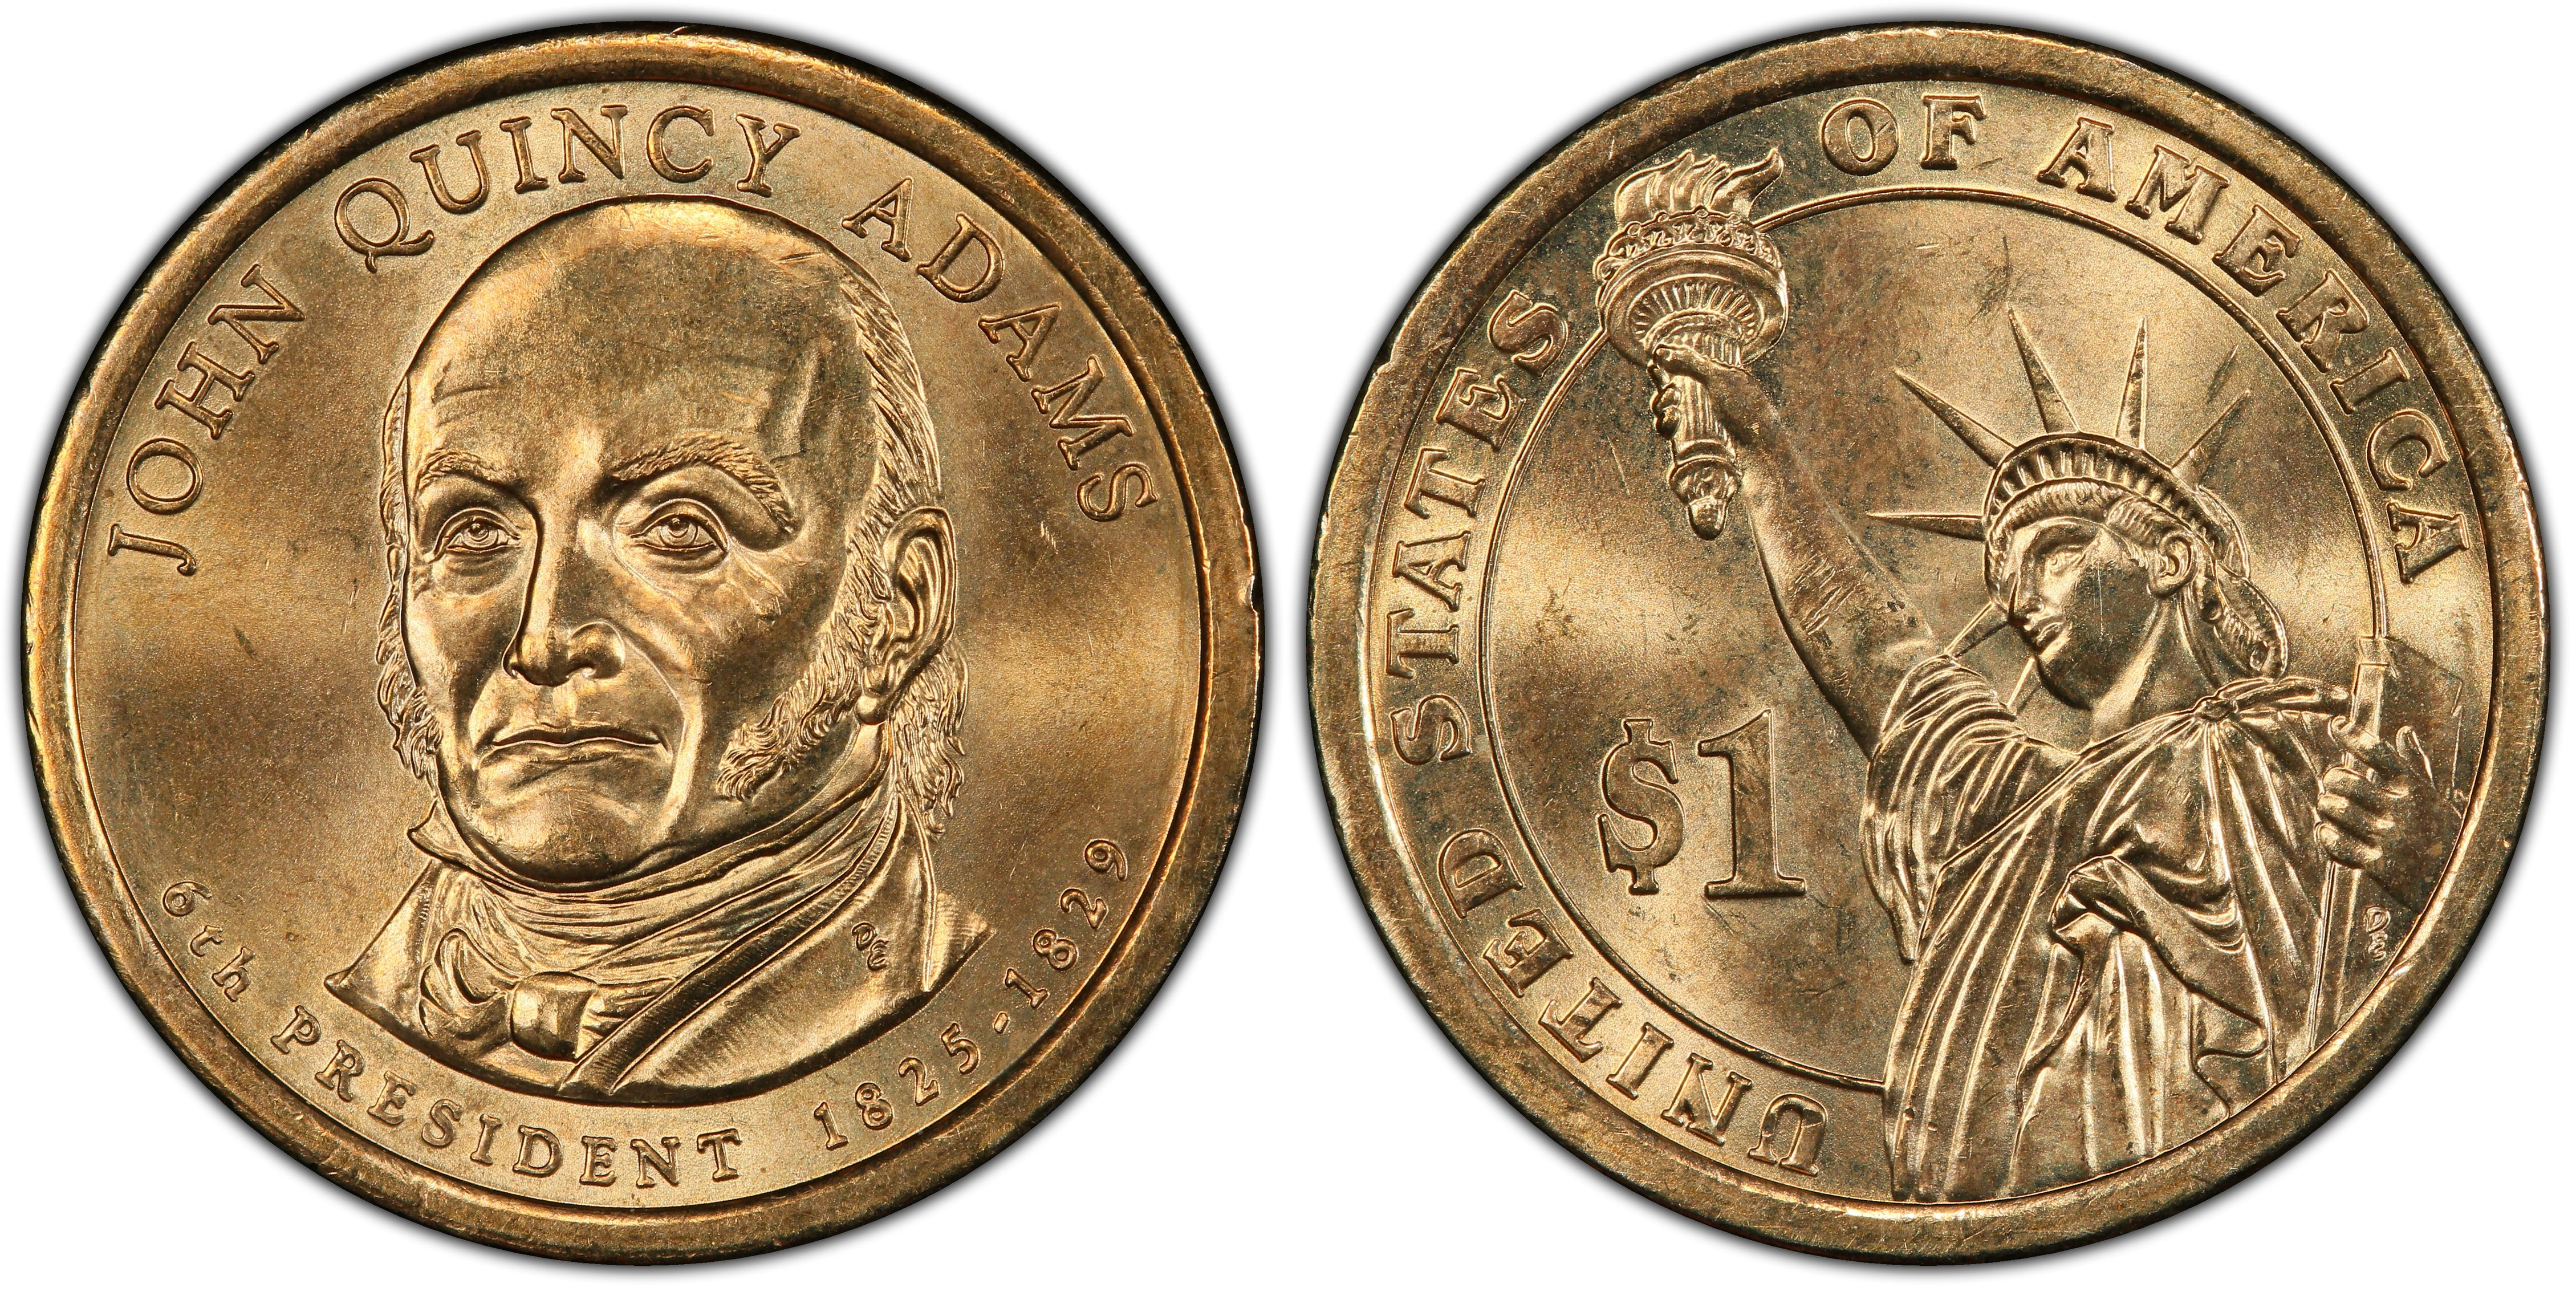 2008 P /& D 6th President John Quincy Adams MS67 First Day of Issue 2-Coin Set